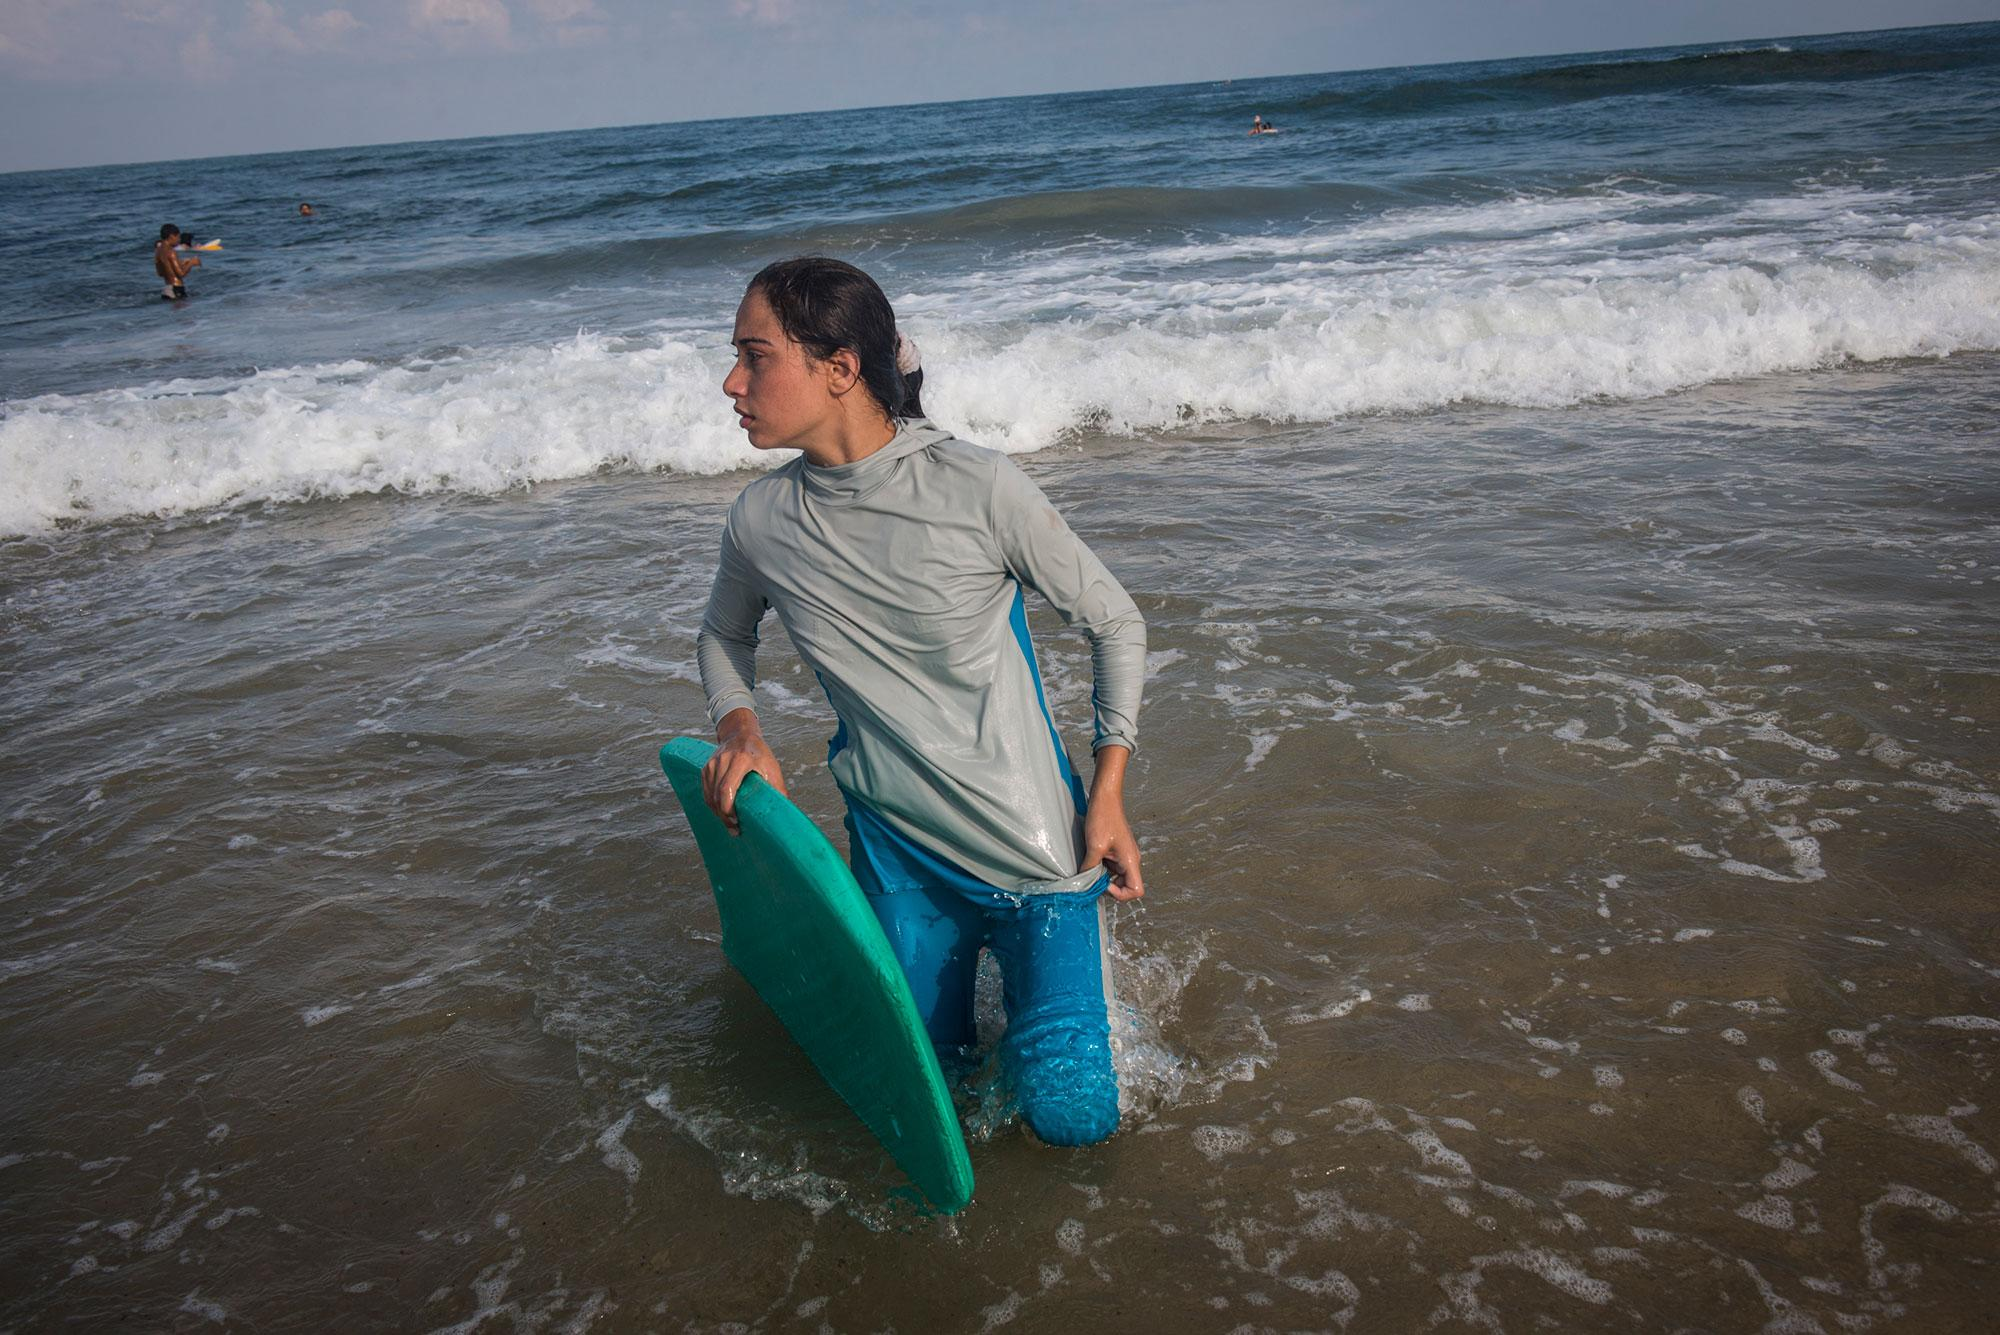 <p>For many Gazans the sea is the only place they can be without being reminded of their isolation. Female Surfer, Sabah Abu Ghanem ,14 and her sister surf early in the morning outside of Gaza city. The sisters place first in many competitions inside the strip, but have never left the Gaza Strip to compete. (Photograph by Monique Jaques) </p>